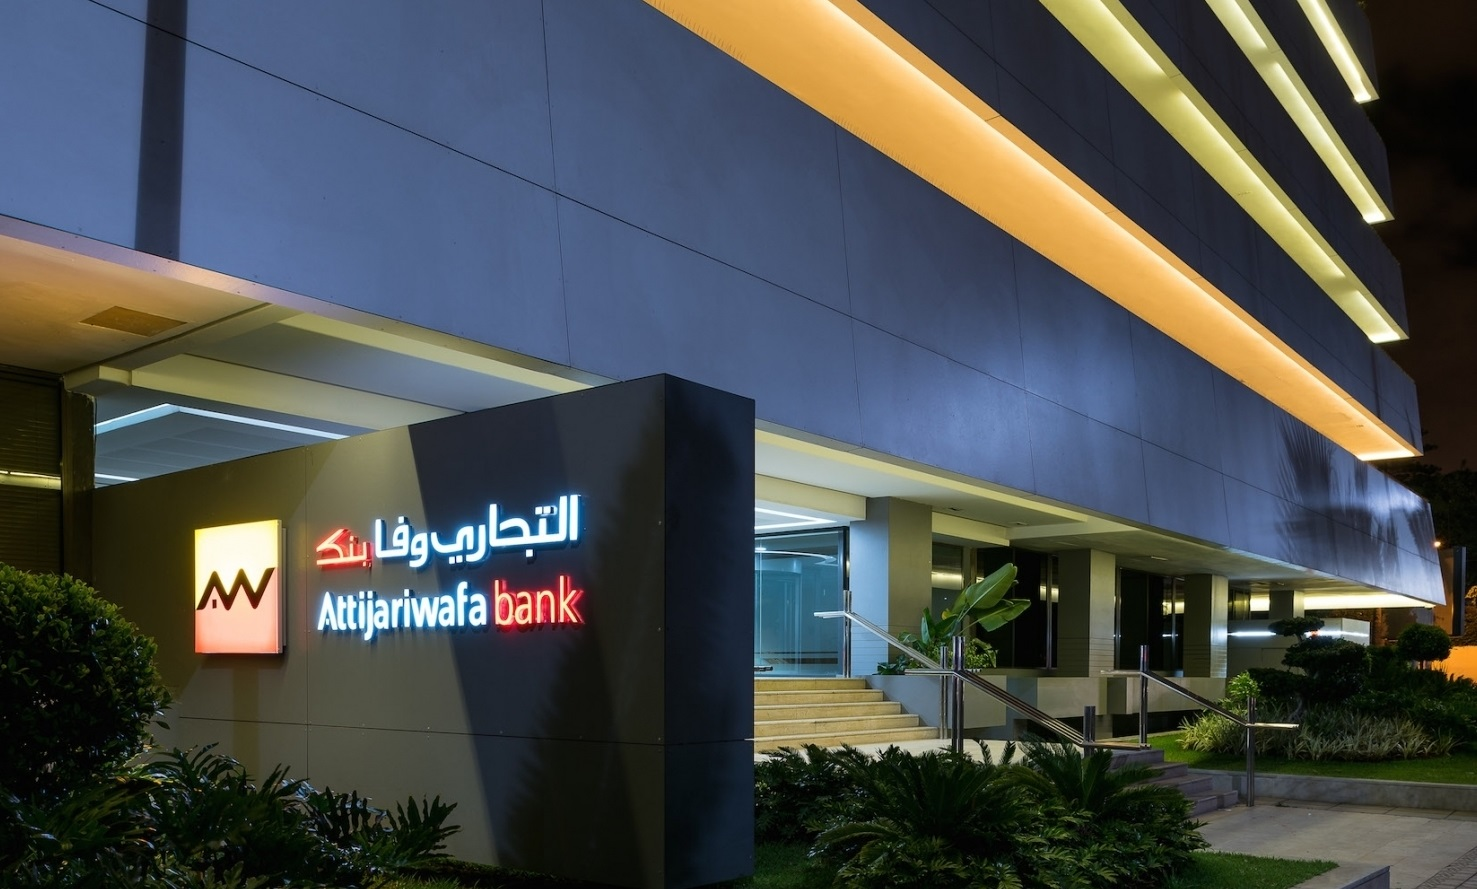 Attijariwafa bank et sa filiale offshore Attijari International Bank décrochent le prix « STP AWARD 2019 »